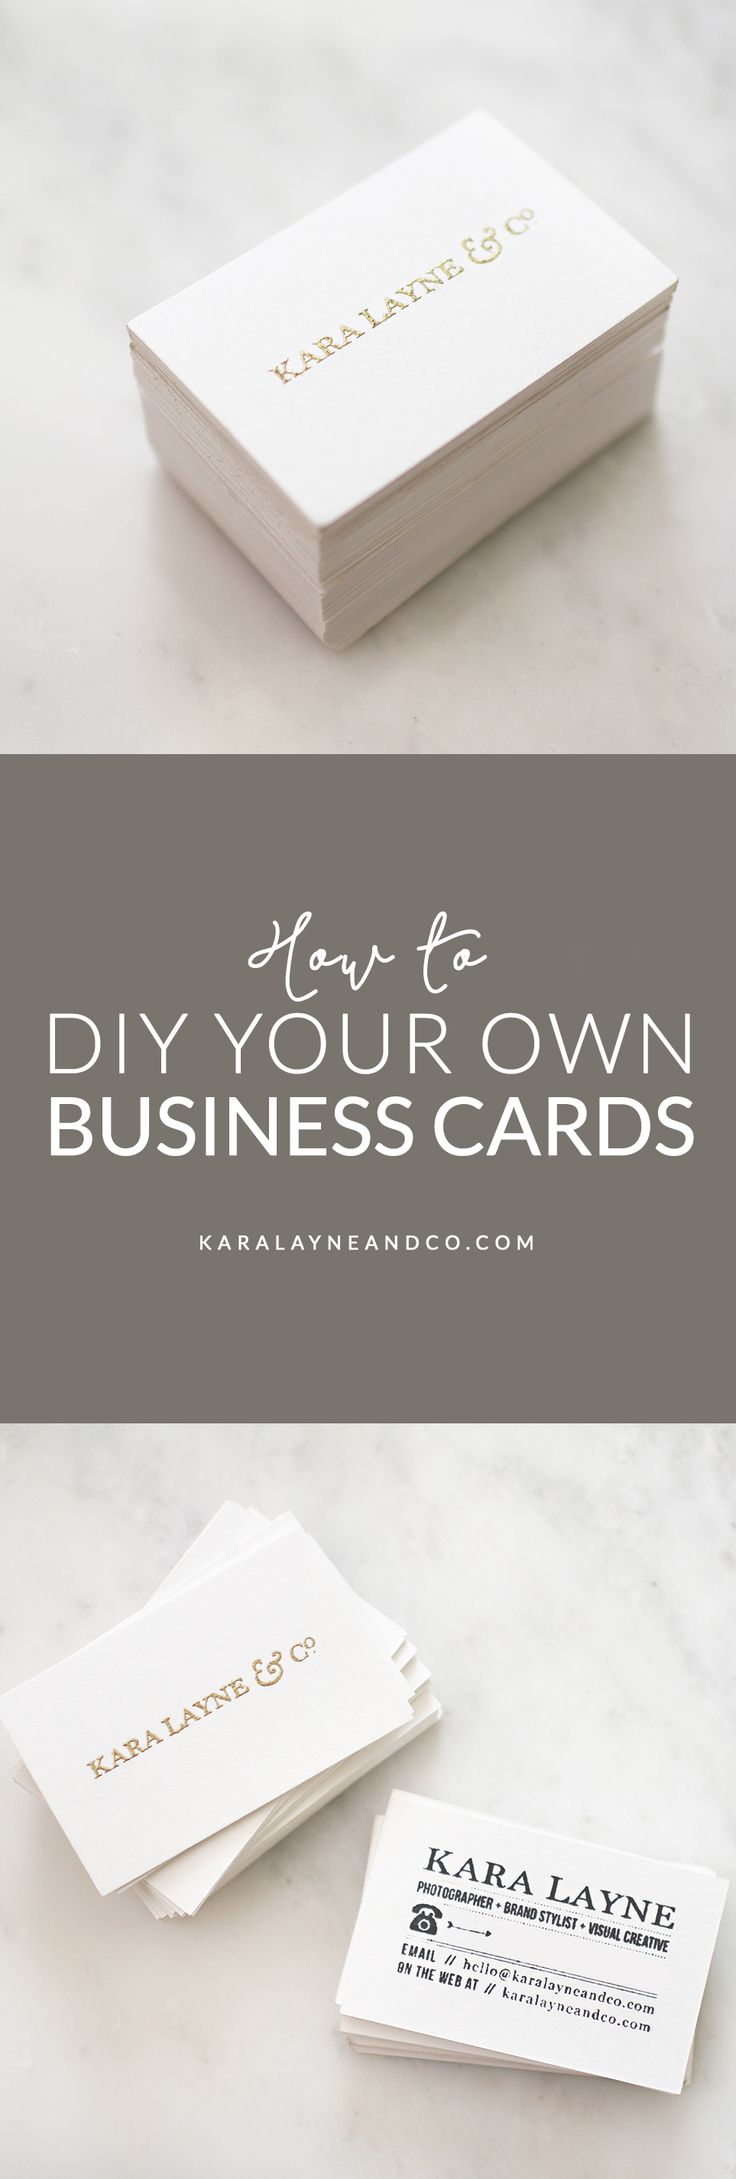 25 best ideas about make business cards on pinterest for How to make your own business cards free